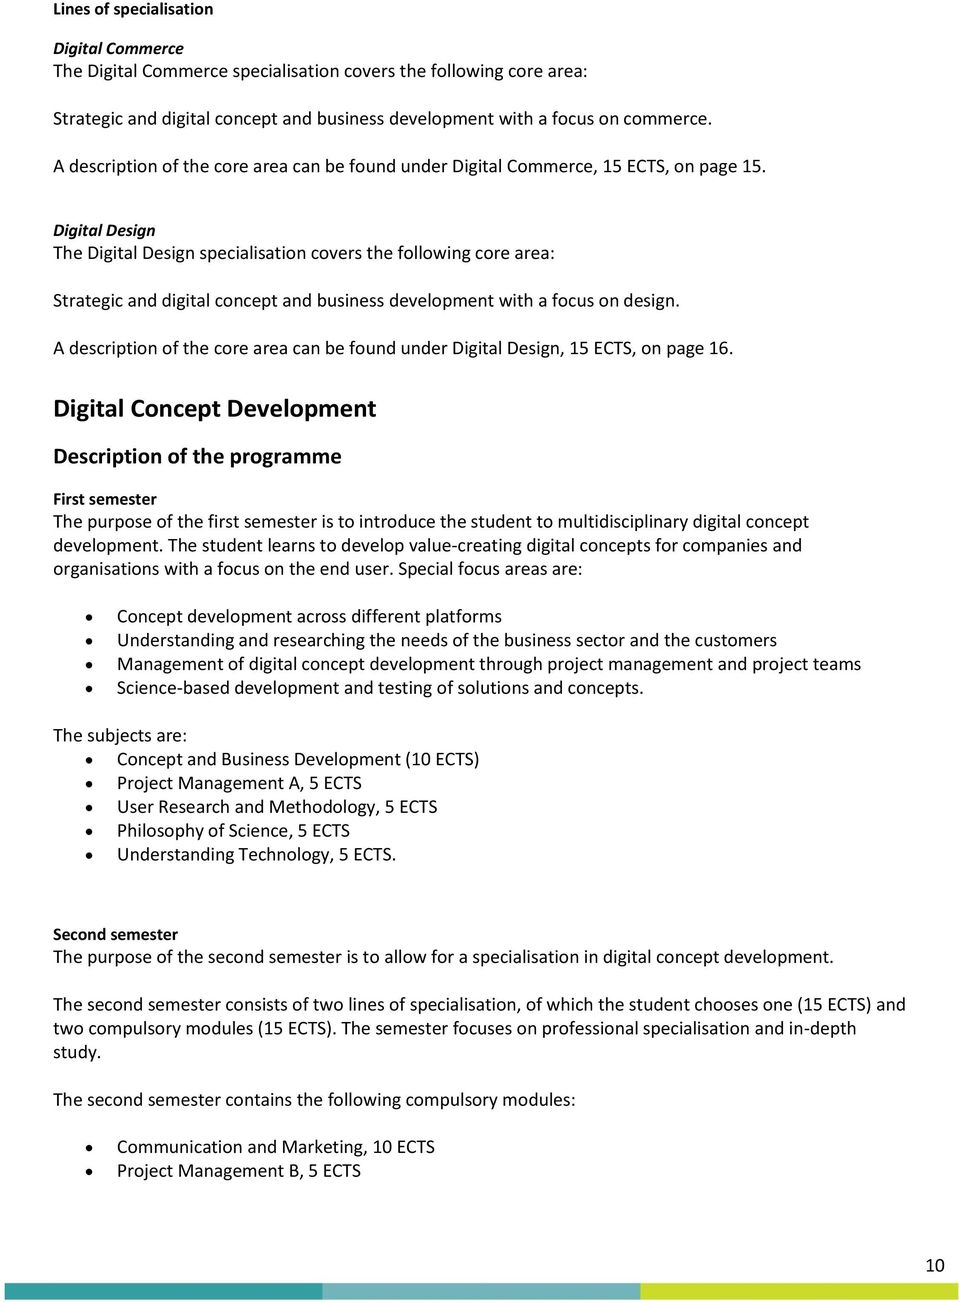 Digital Design The Digital Design specialisation covers the following core area: Strategic and digital concept and business development with a focus on design.